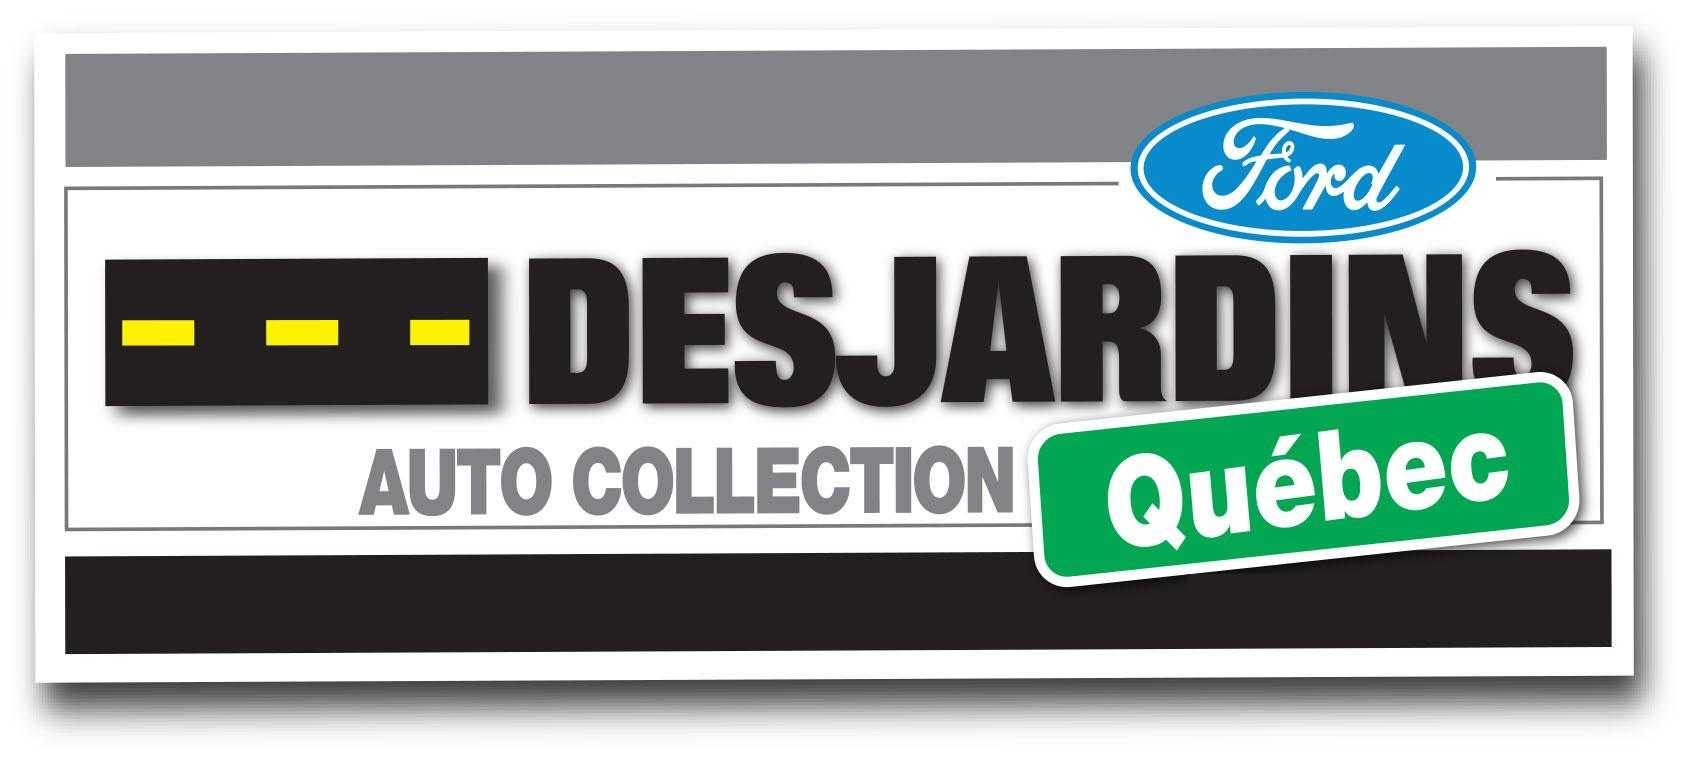 Desjardins Auto Collection